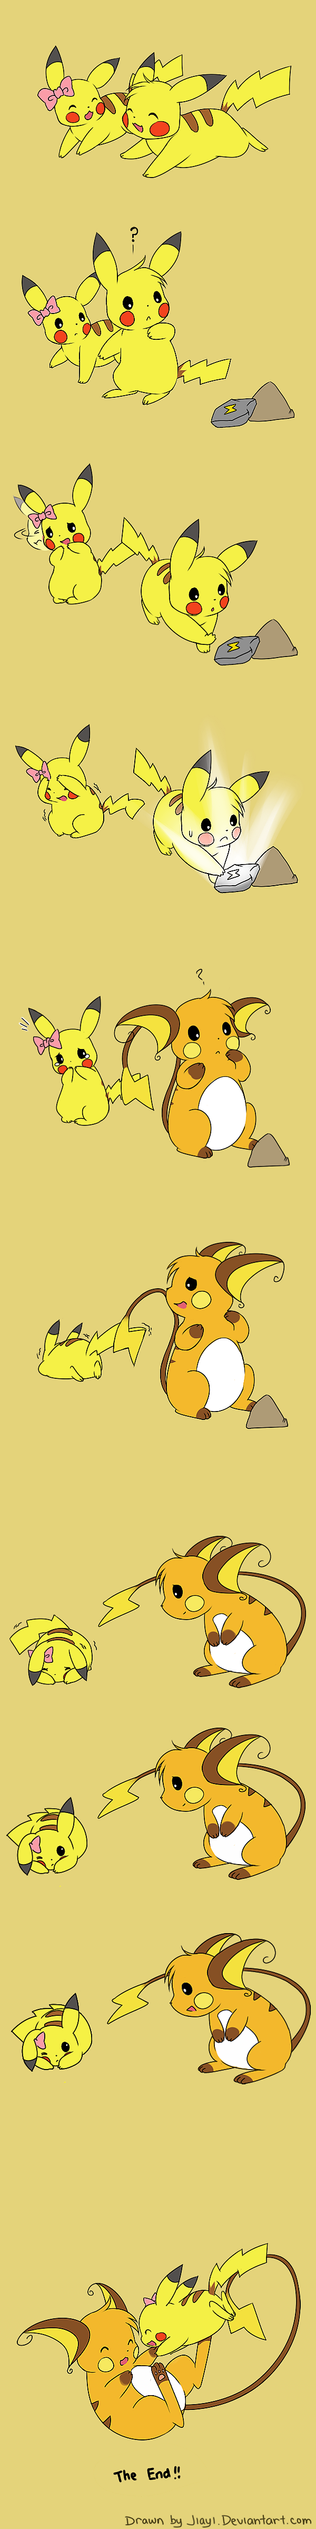 A tale of 2 Pikachus by Jiayi